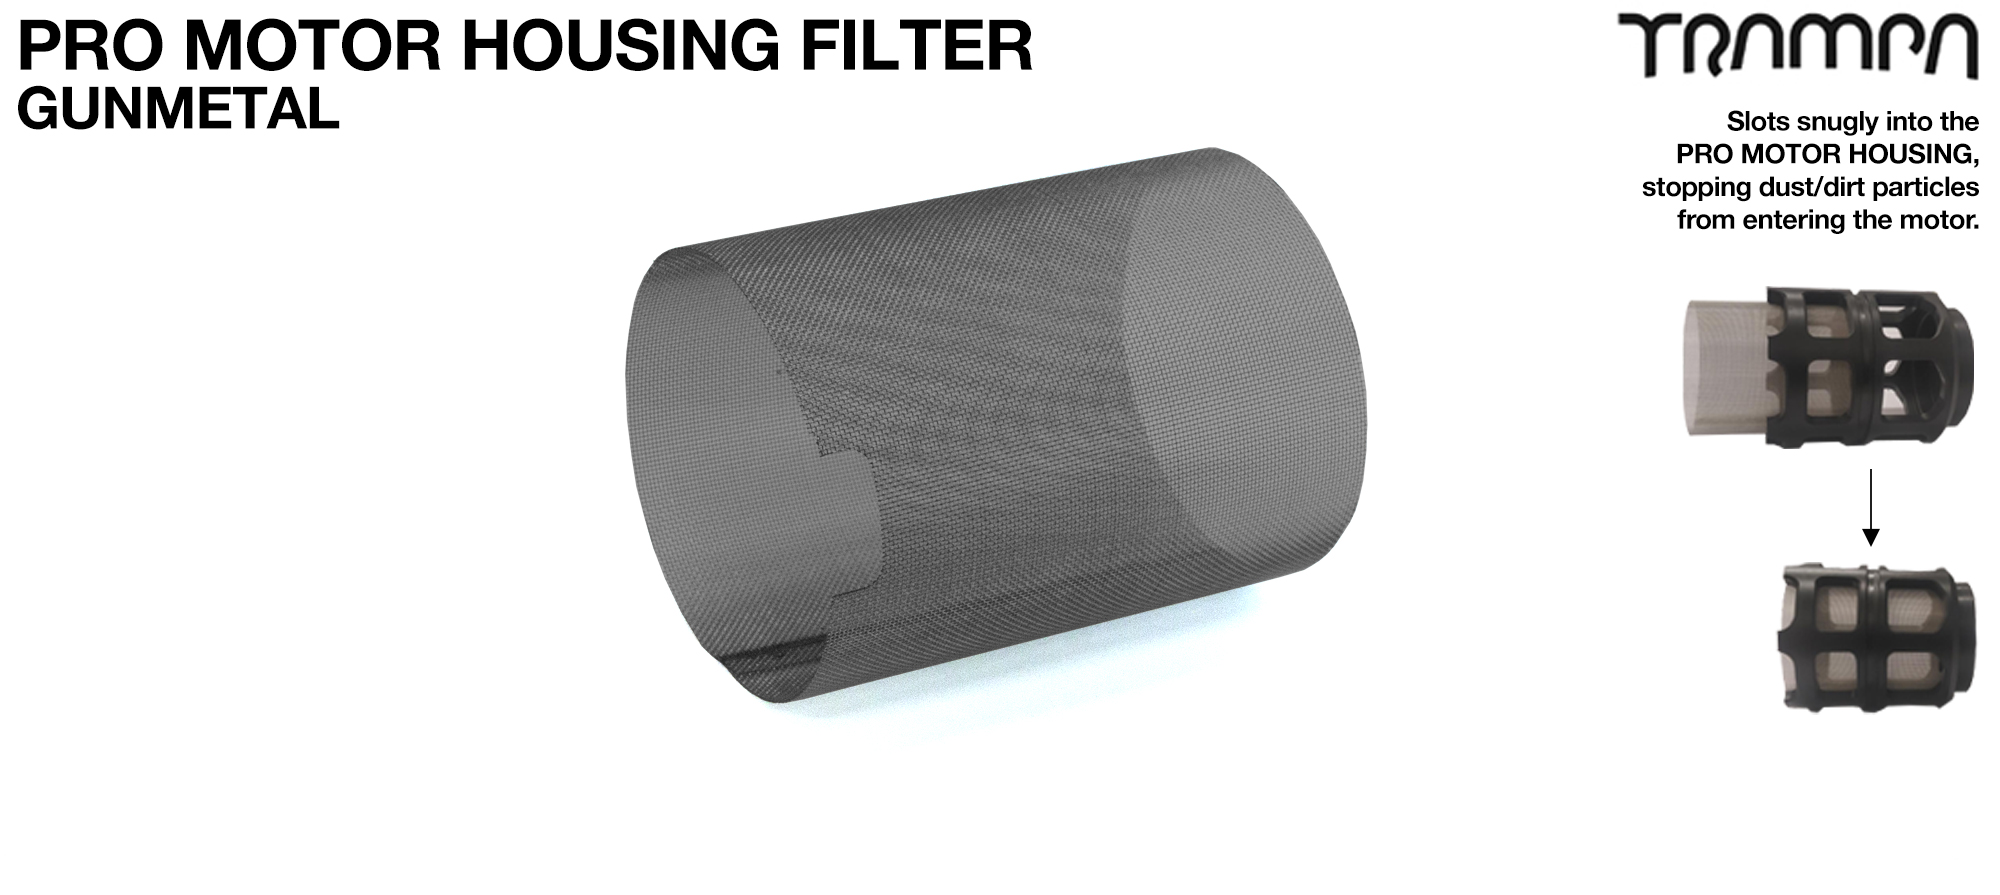 MkII Motor Protection Cover MESH FILTER - GUNMETAL